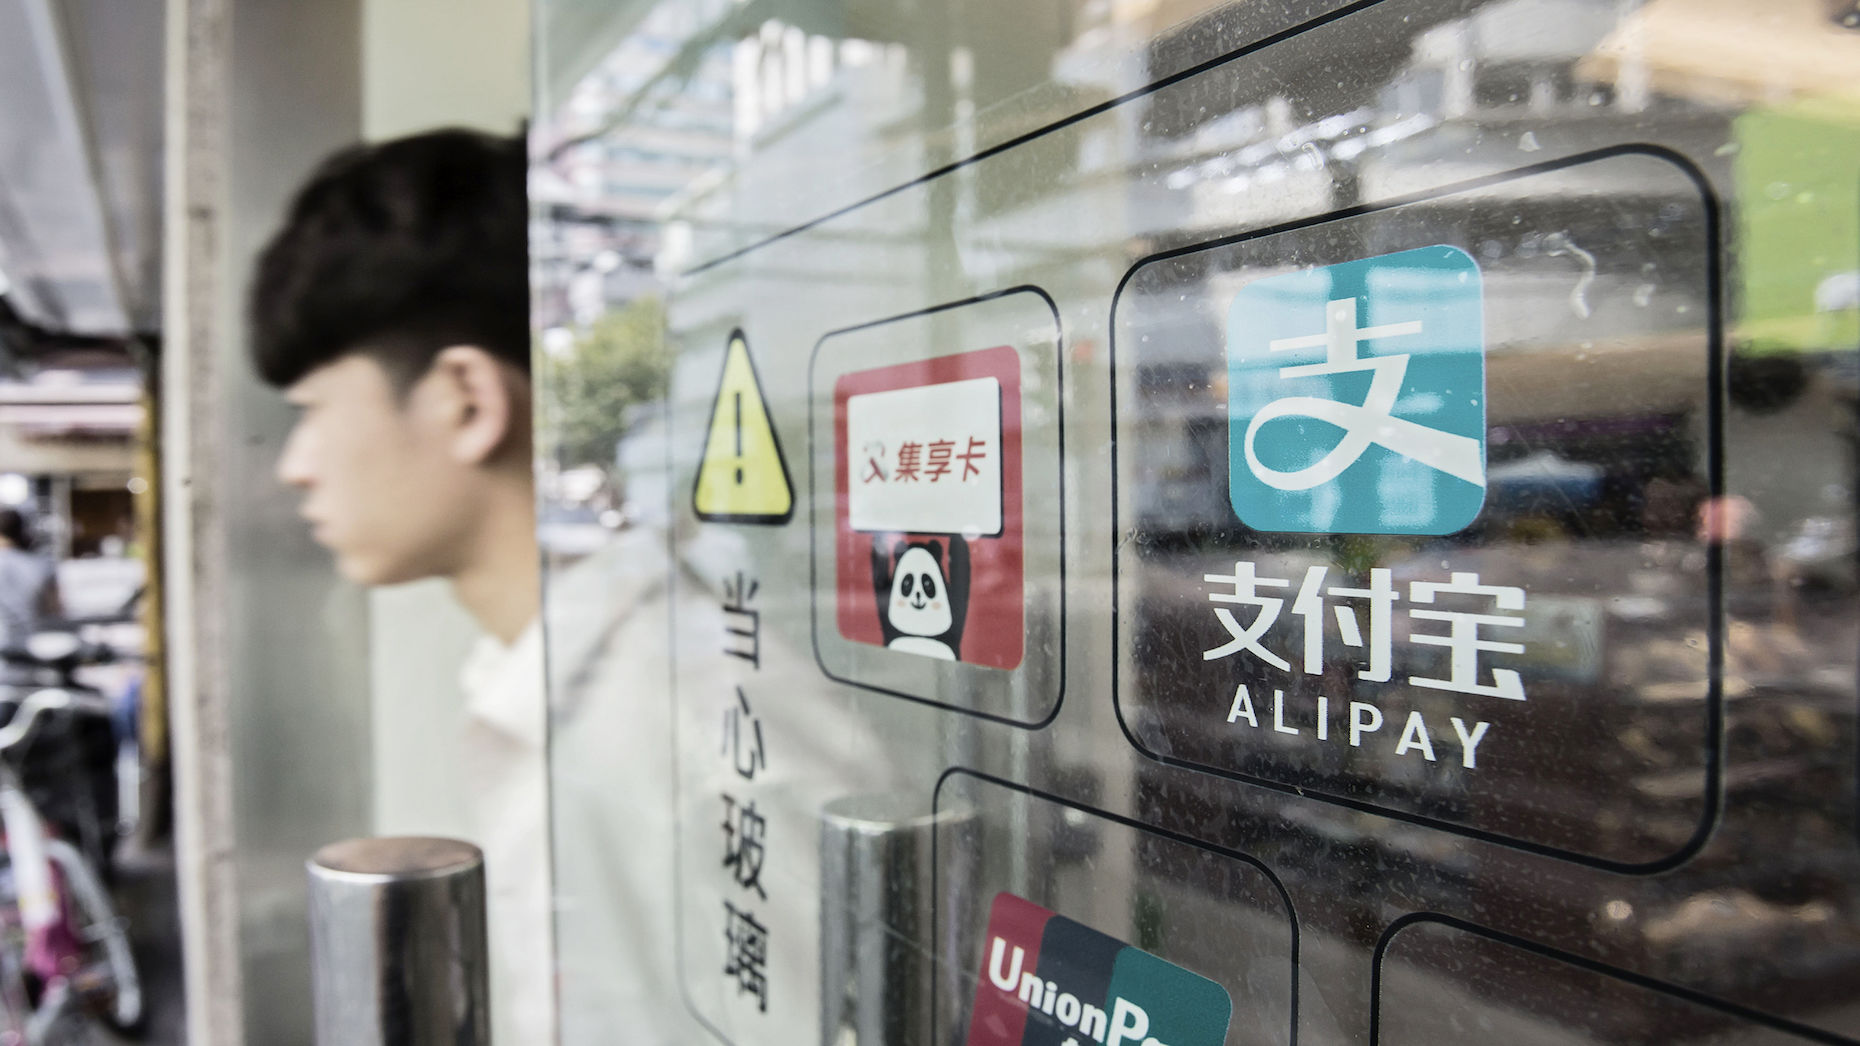 Alipay and Tenpay together hold  91% of the online payments market in China. Photo: Bloomberg